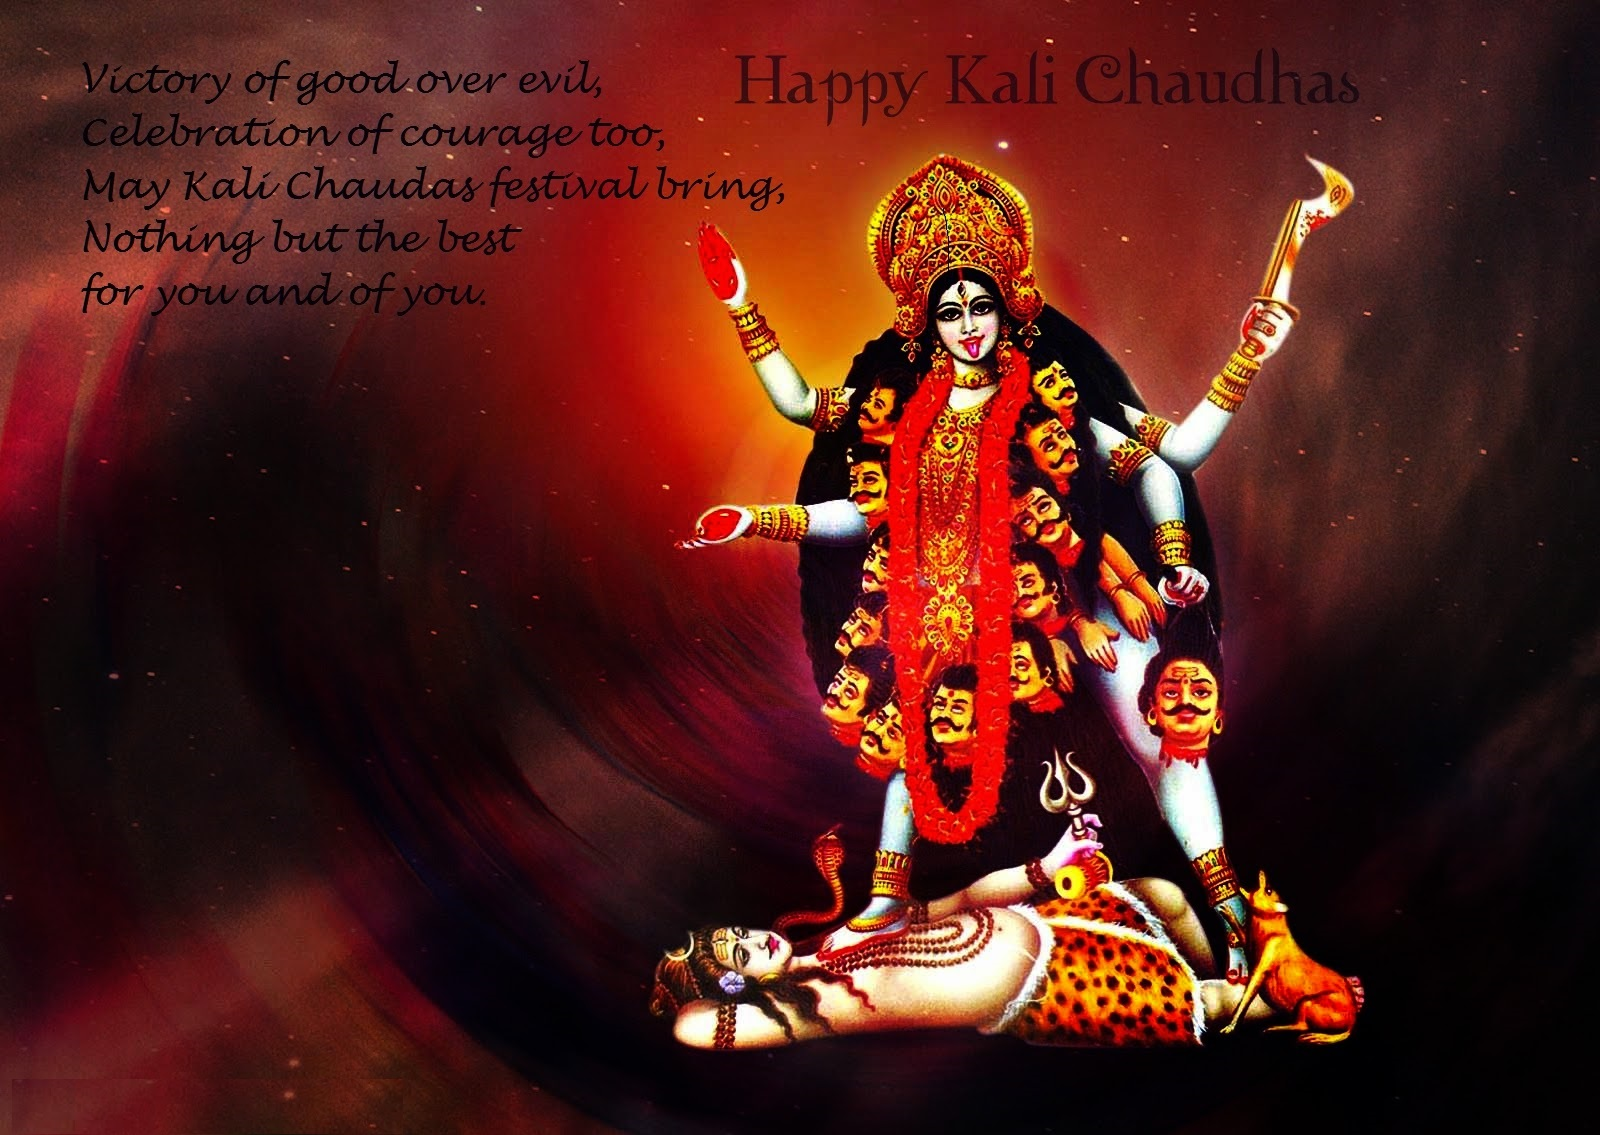 Happy Kali Chaudas Wishes Photo